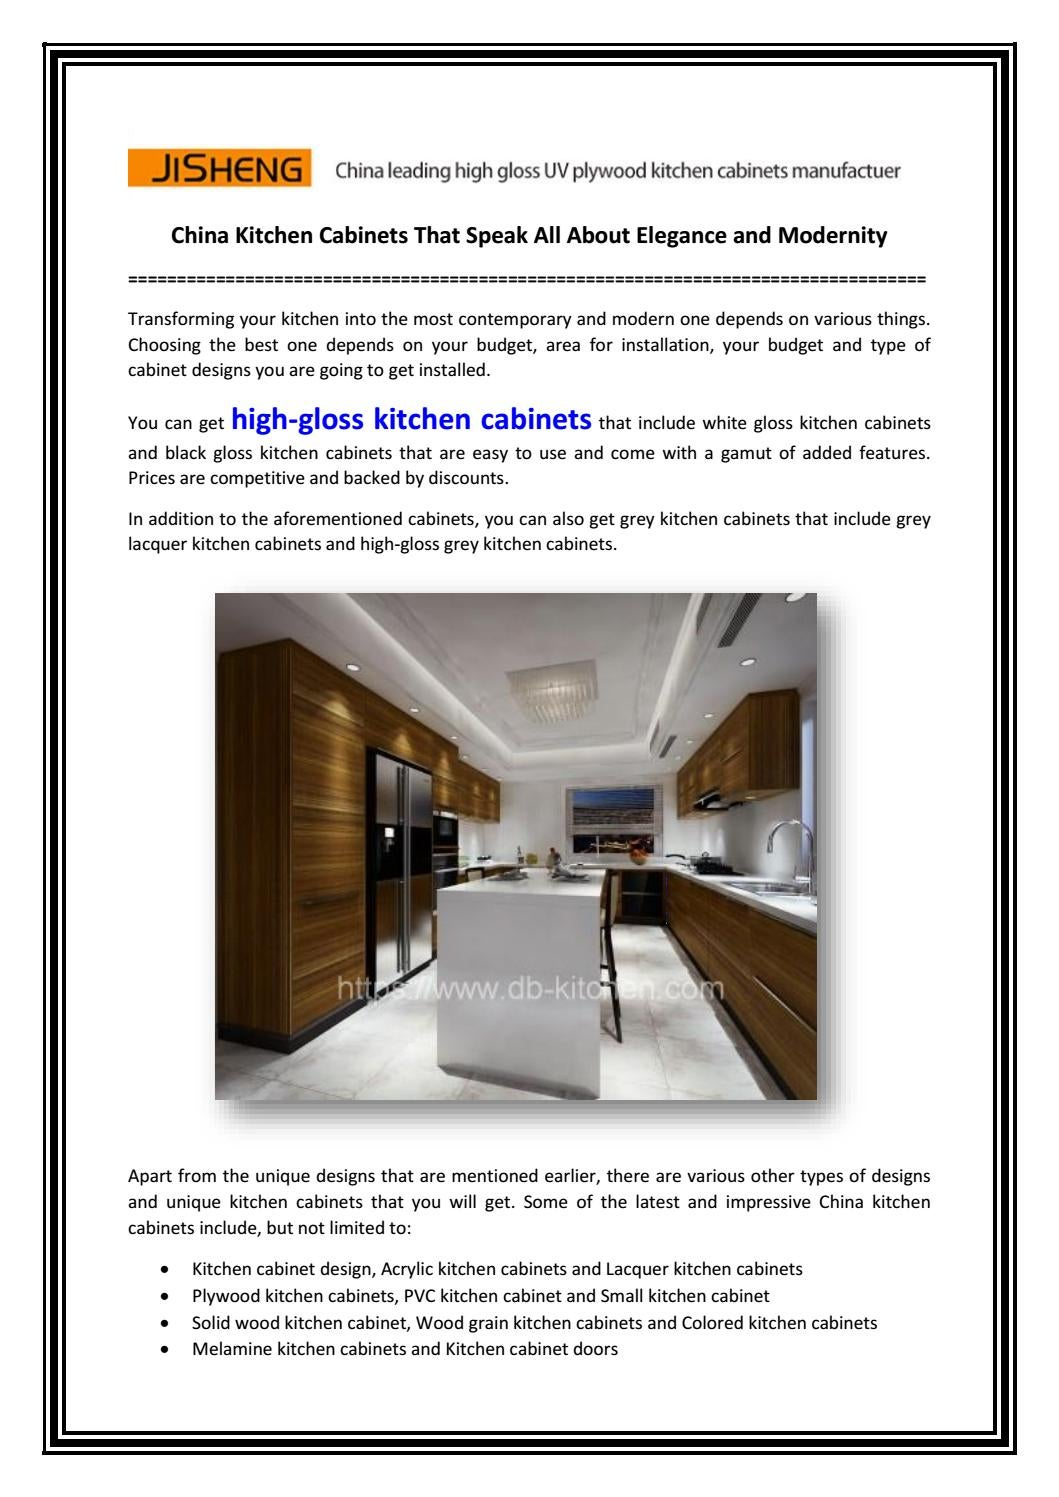 China Kitchen Cabinets That Speak All About Elegance And